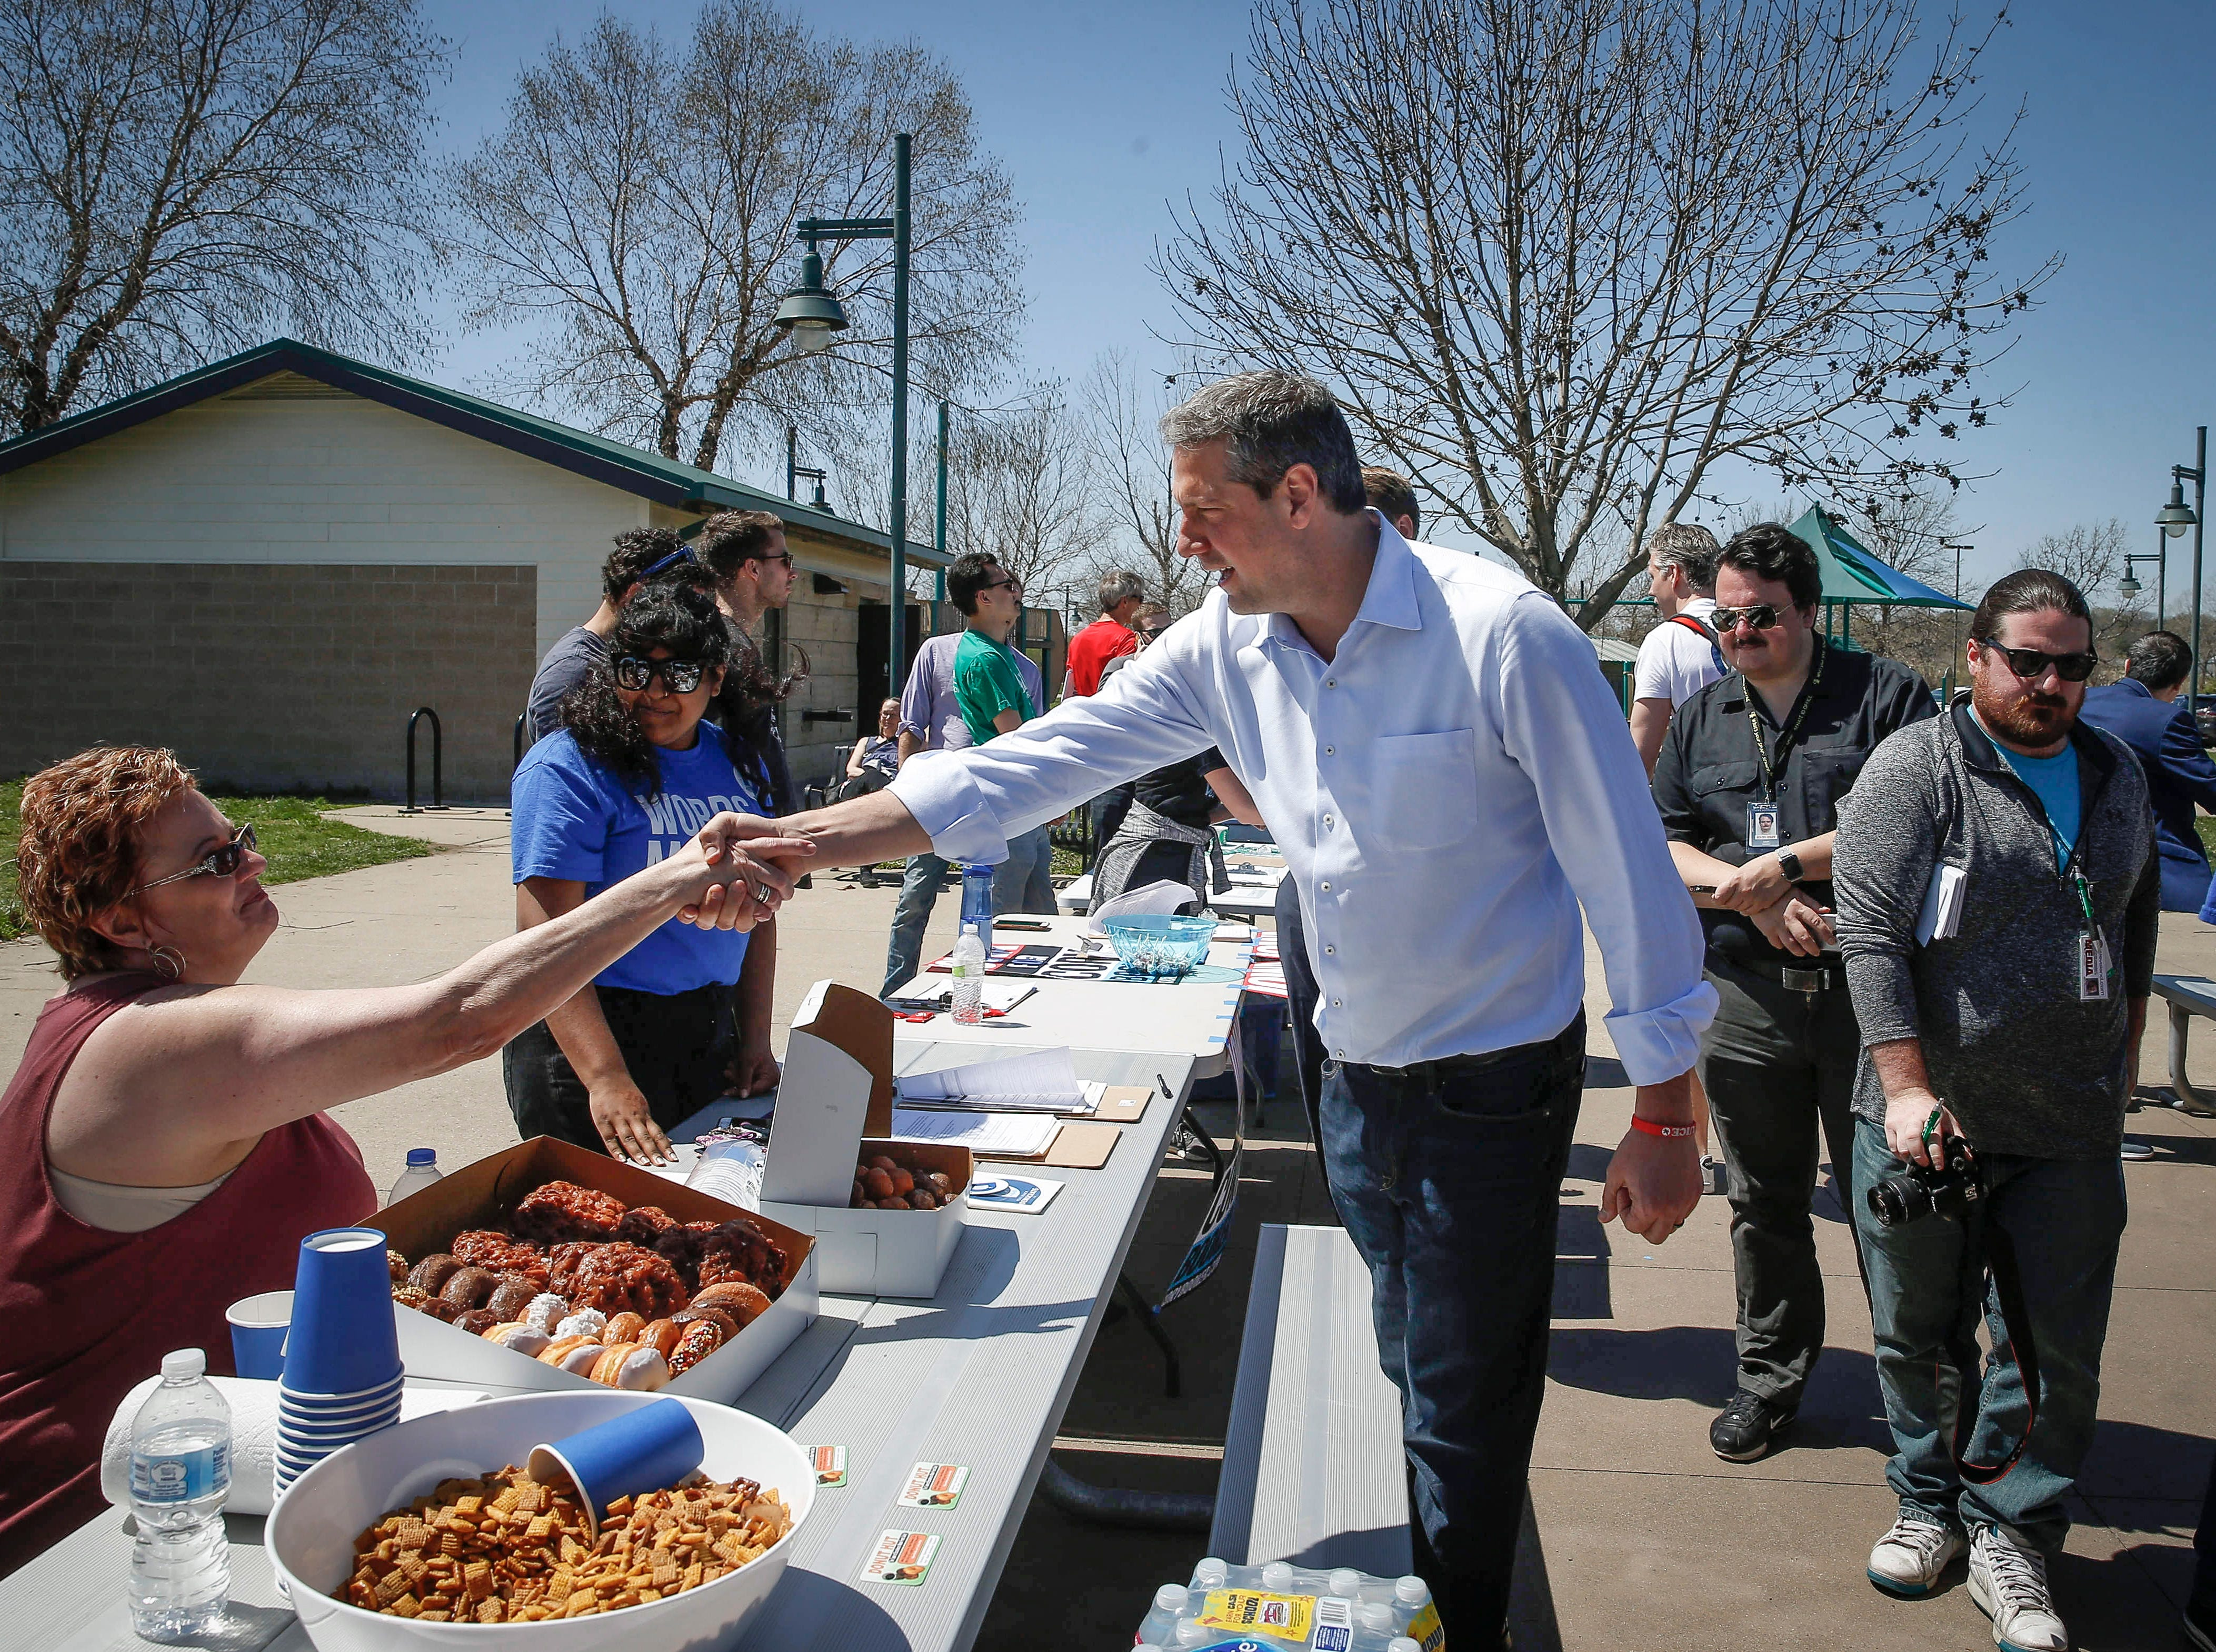 Representative and democratic presidential candidate hopeful Tim Ryan (D-Ohio) met with young democrats at Raccoon River Park in West Des Moines on Saturday, April 20, 2019.